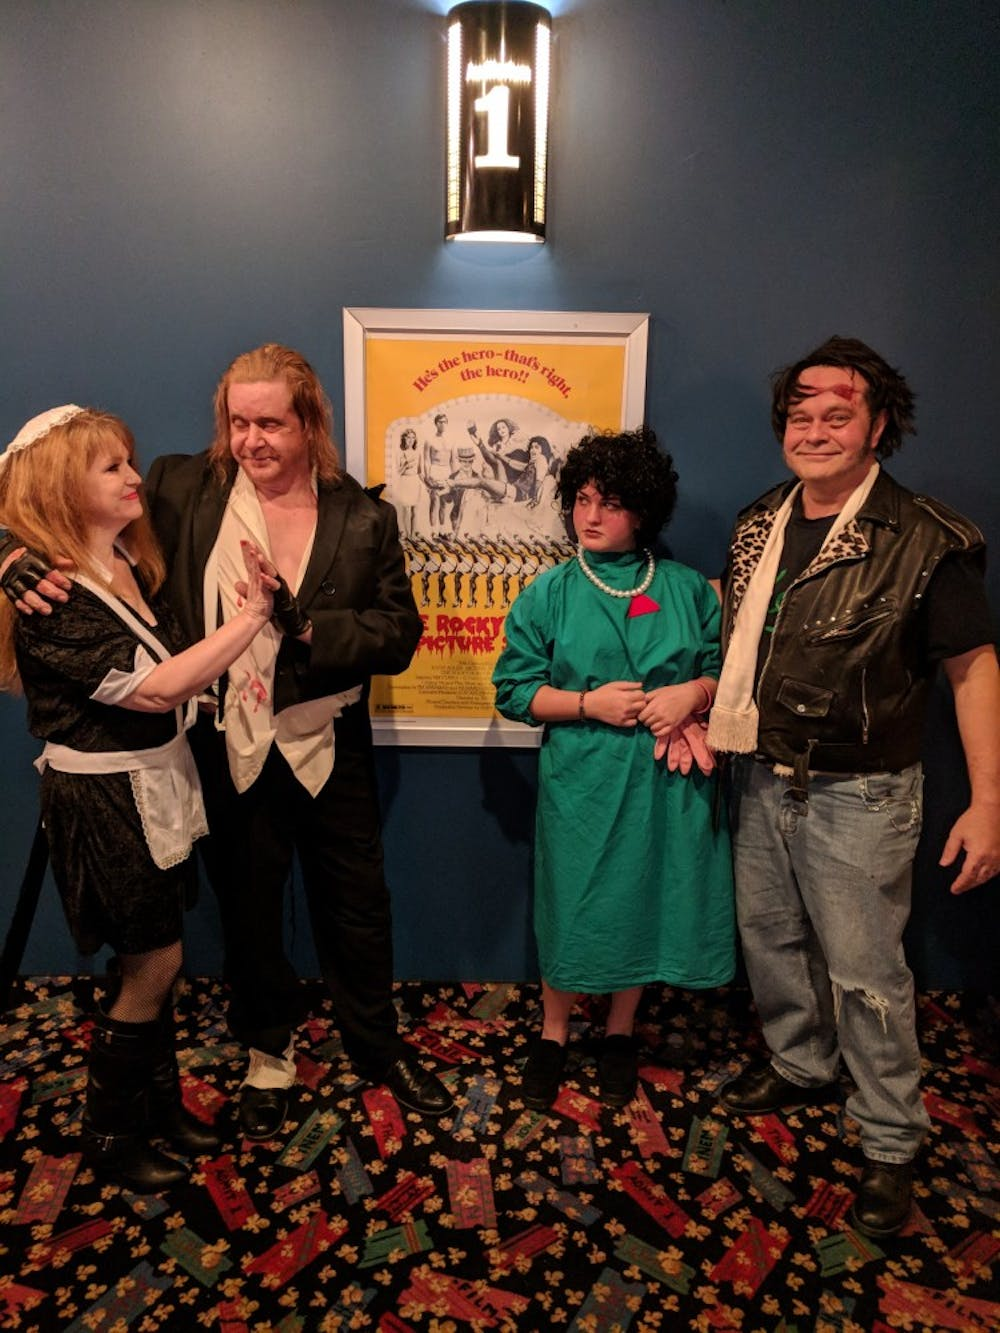 Flick or treat! Local theater shows Halloween movie classics